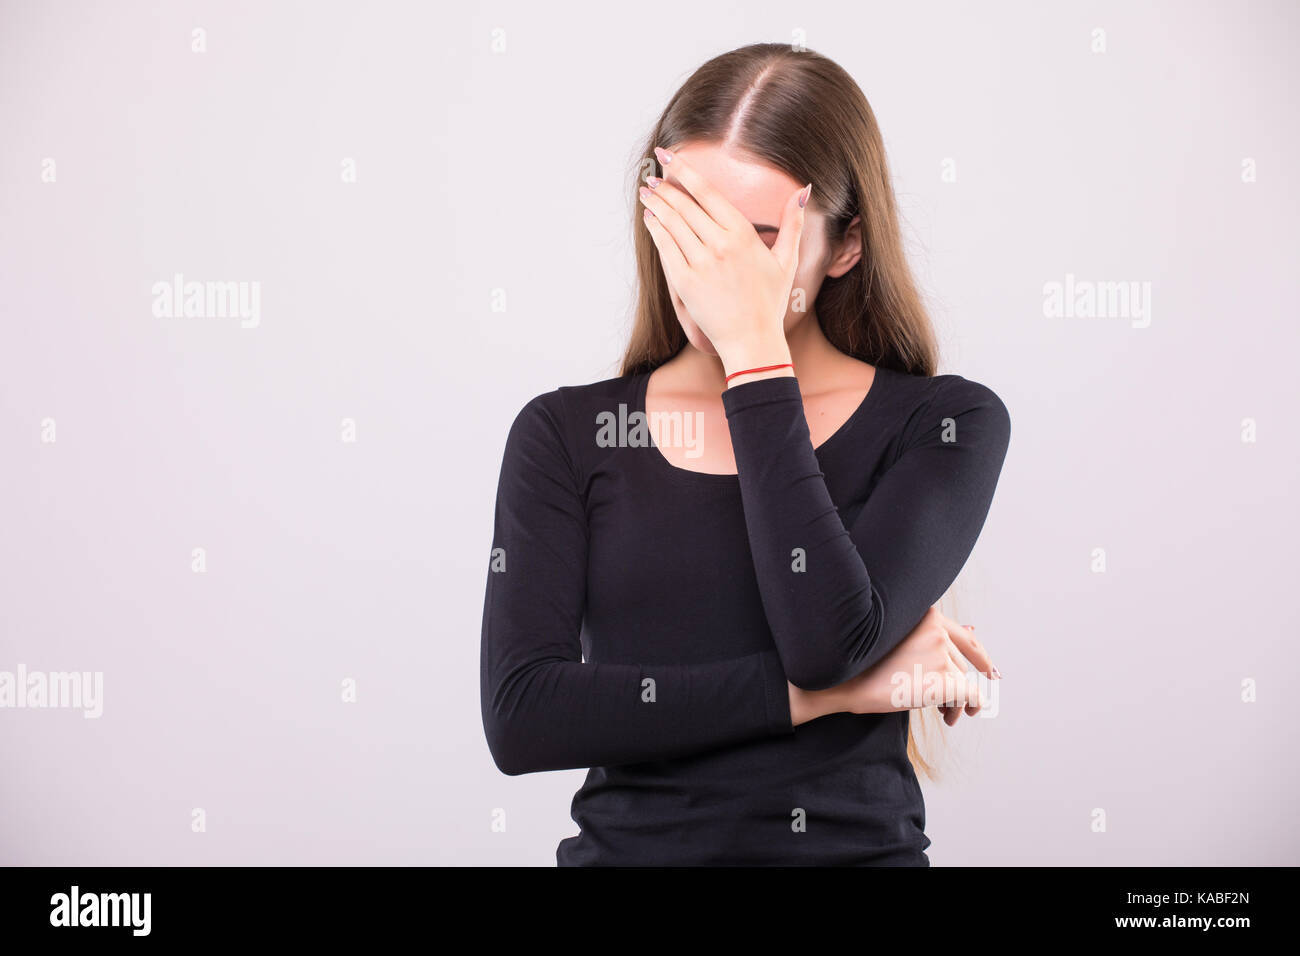 Girl with distrust and doubt looks forward, her arms near face - Stock Image